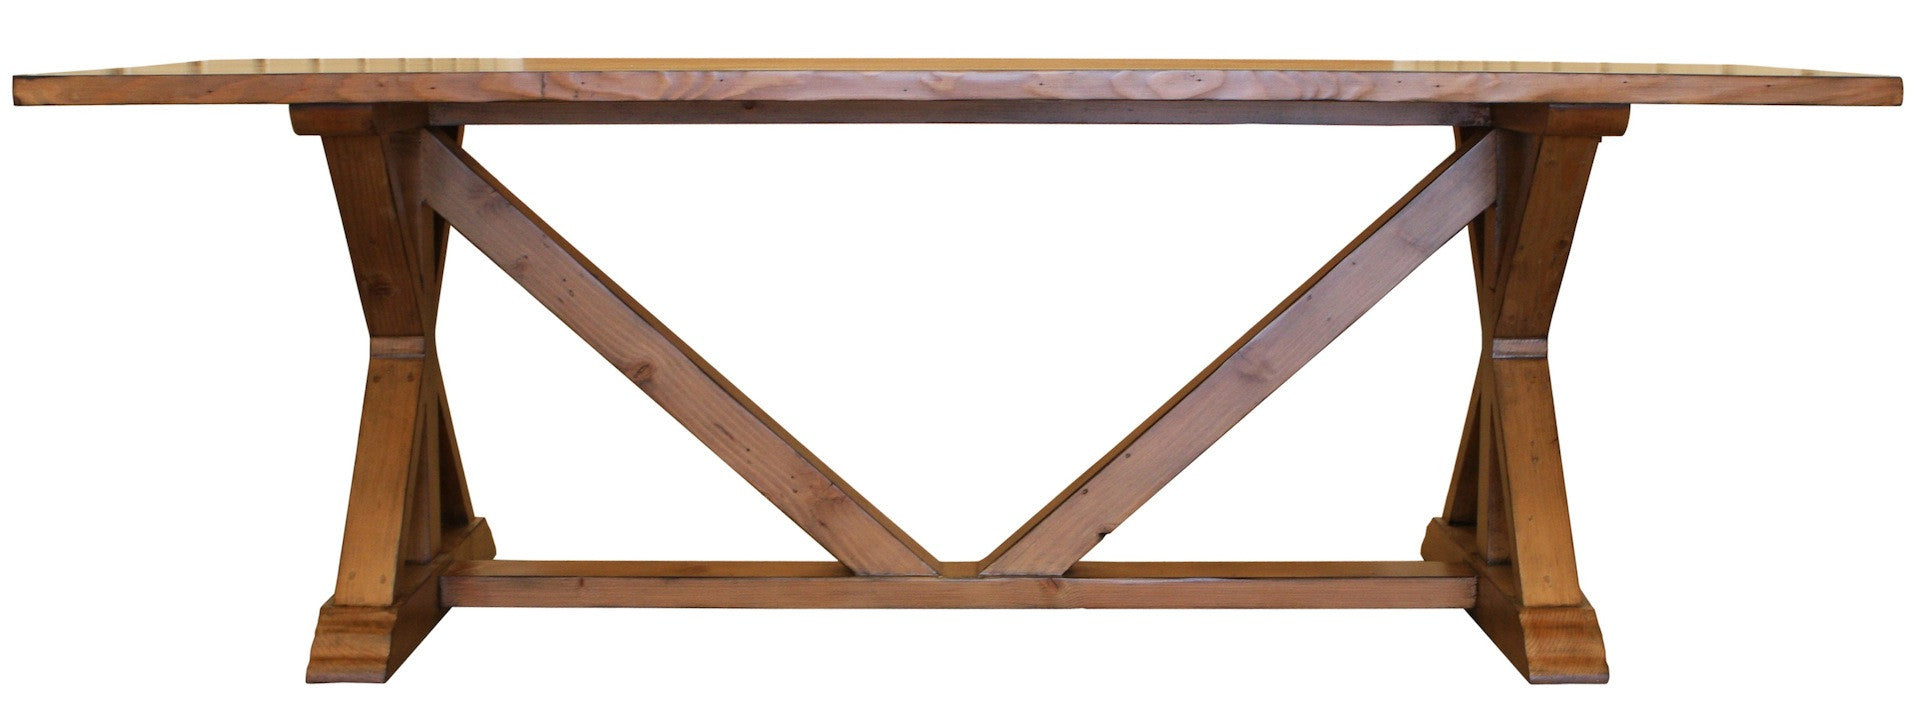 Handmade Country Trestle Refectory Dining Table